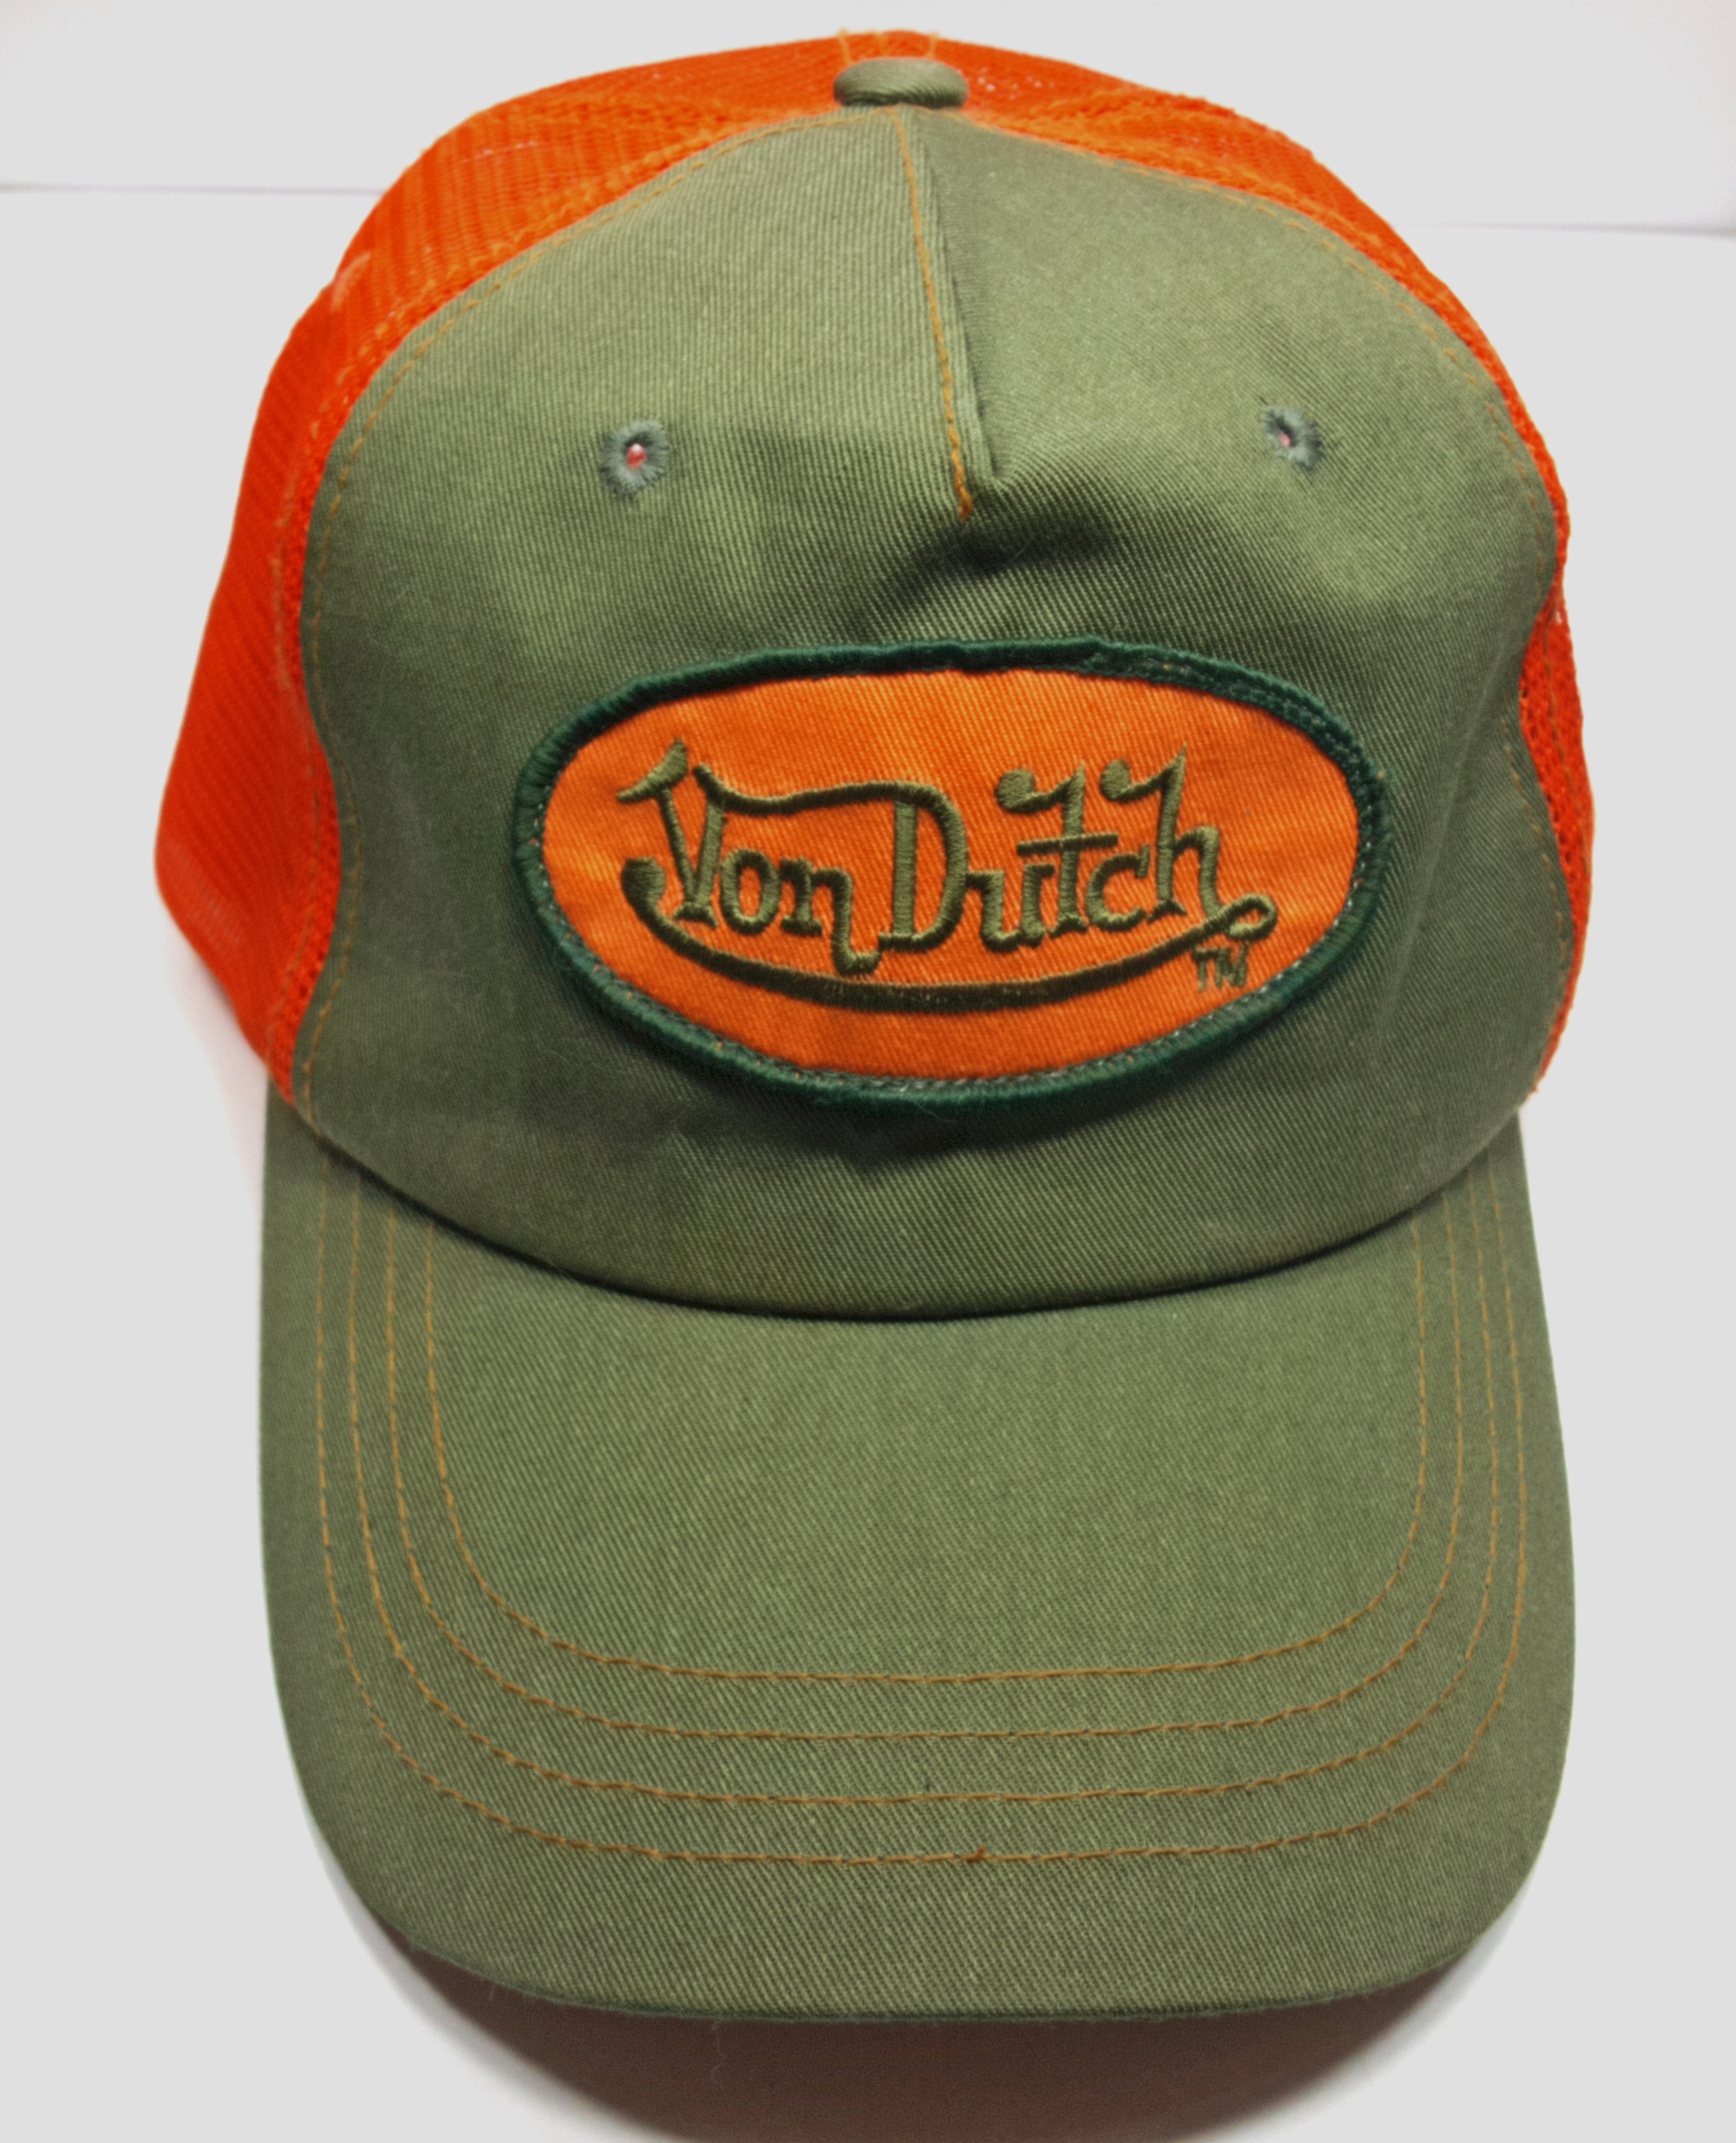 Listed for sale is this vintage 1990 s Von Dutch brand snapback mesh trucker  hat with spell out patch in orange and green. KUSTOM MADE VON DUTCH  ORIGINALS ... 24b495e40dcd